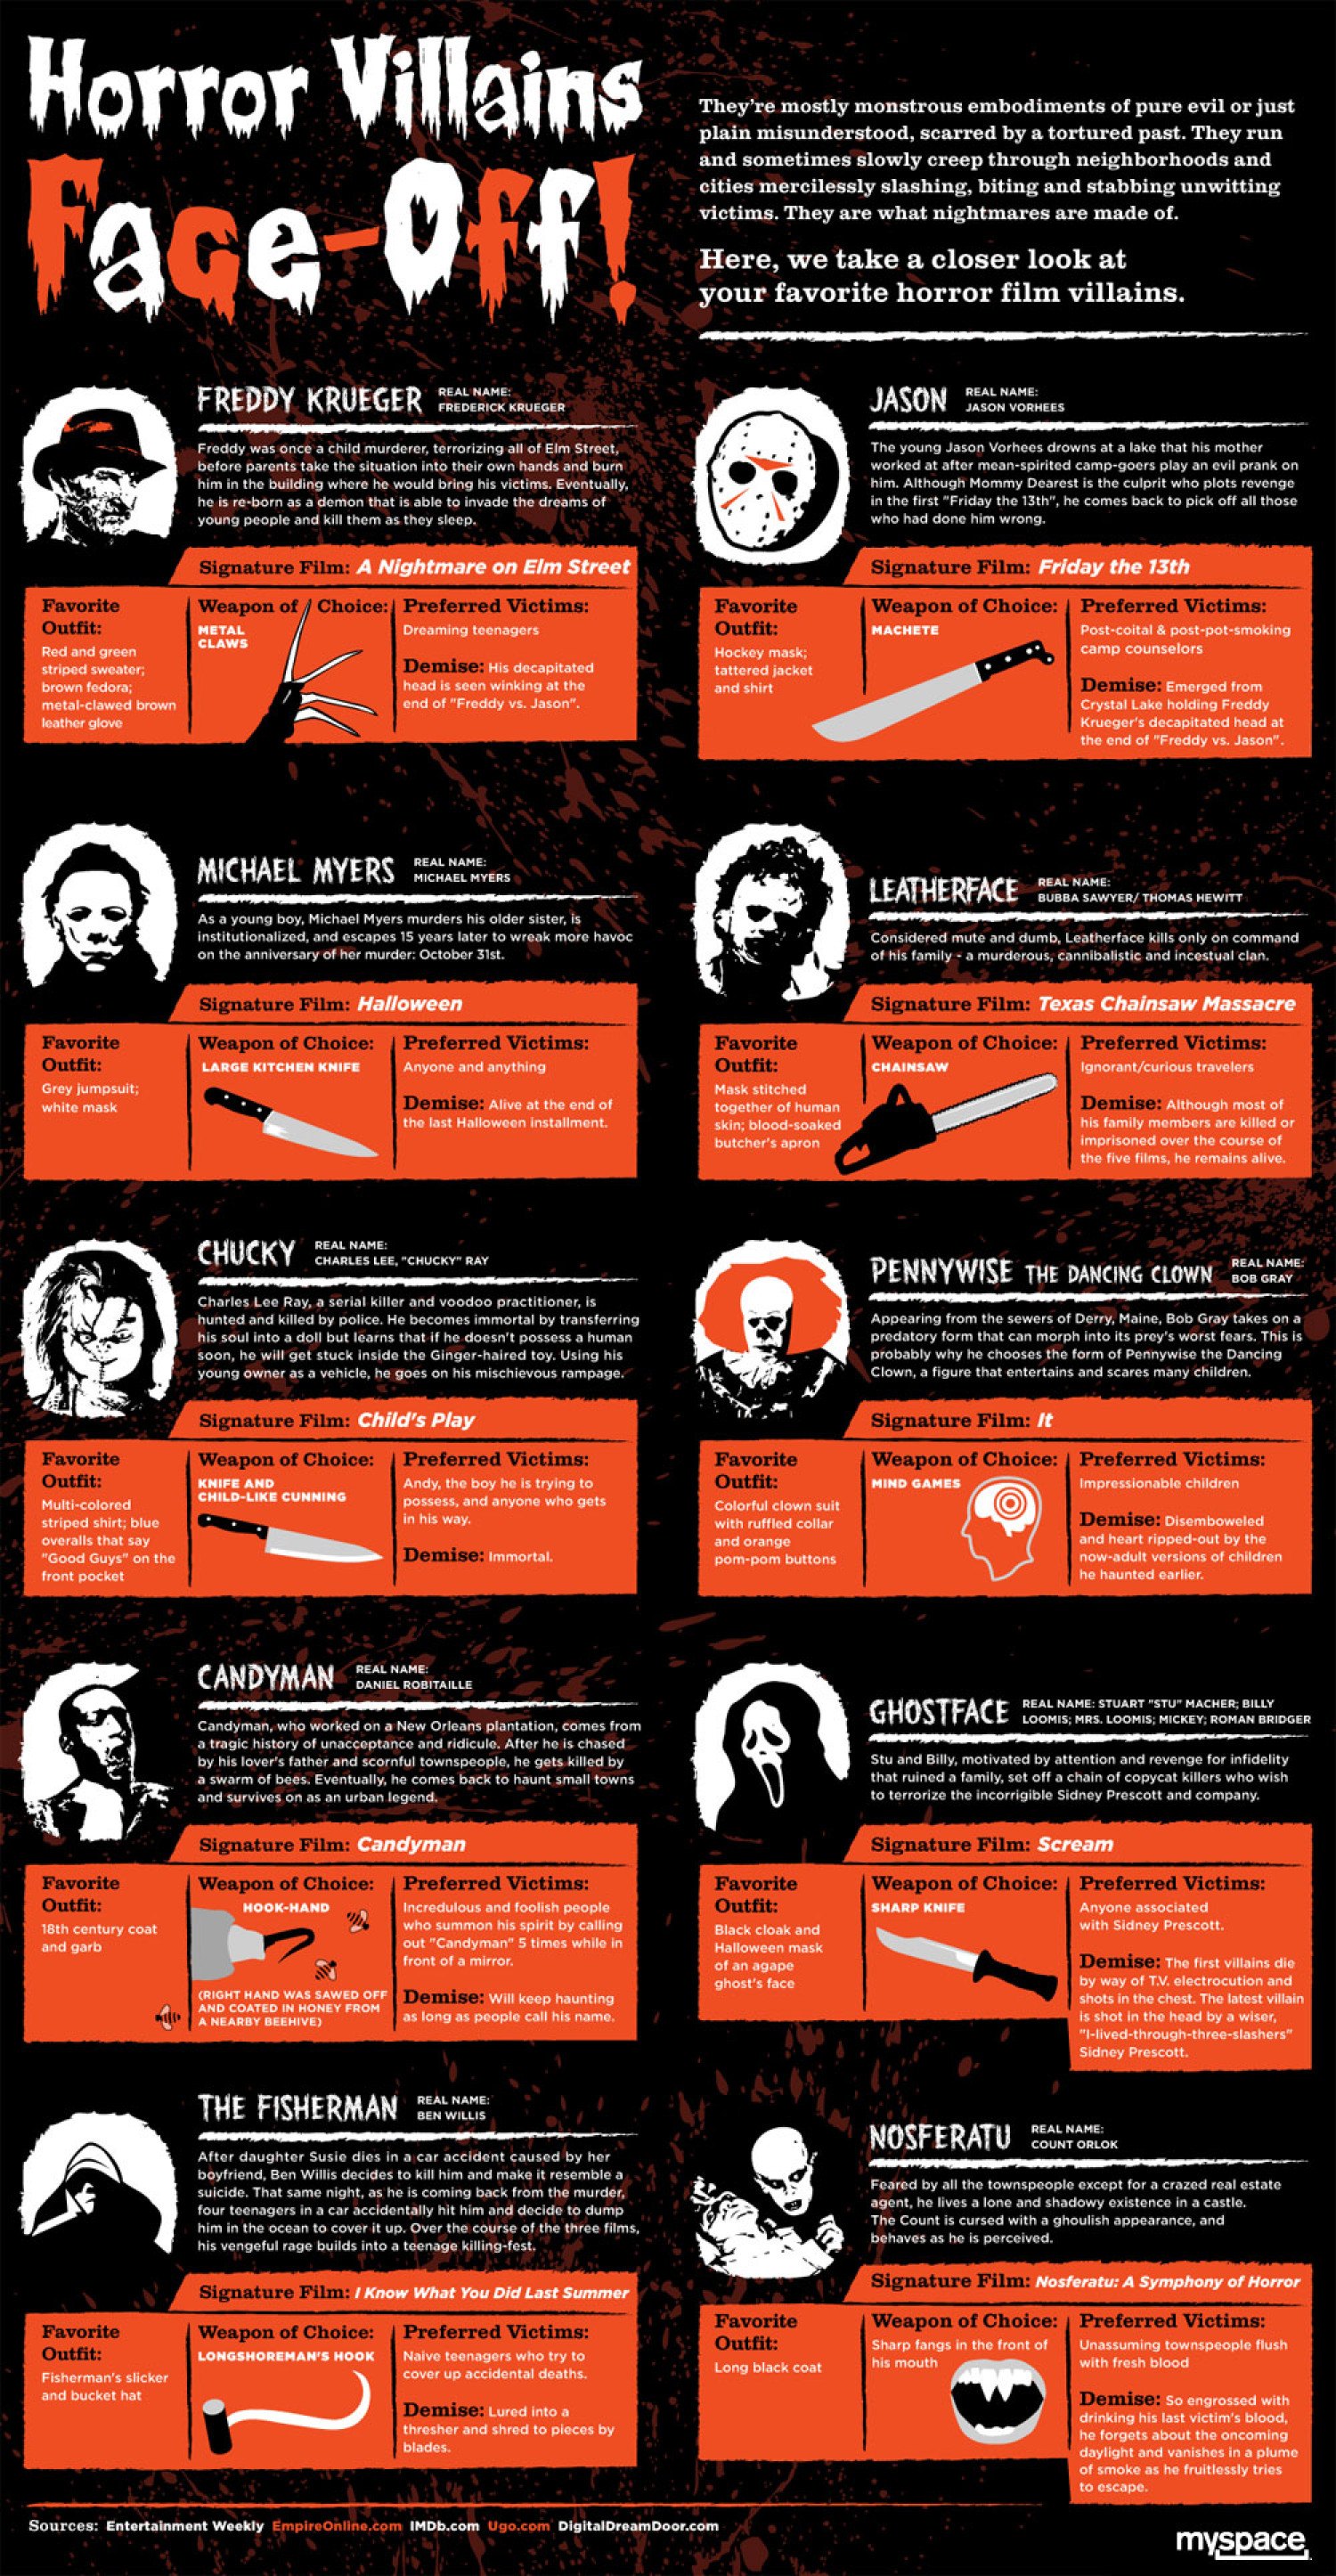 Horror Movie Villains Face-Off  Infographic